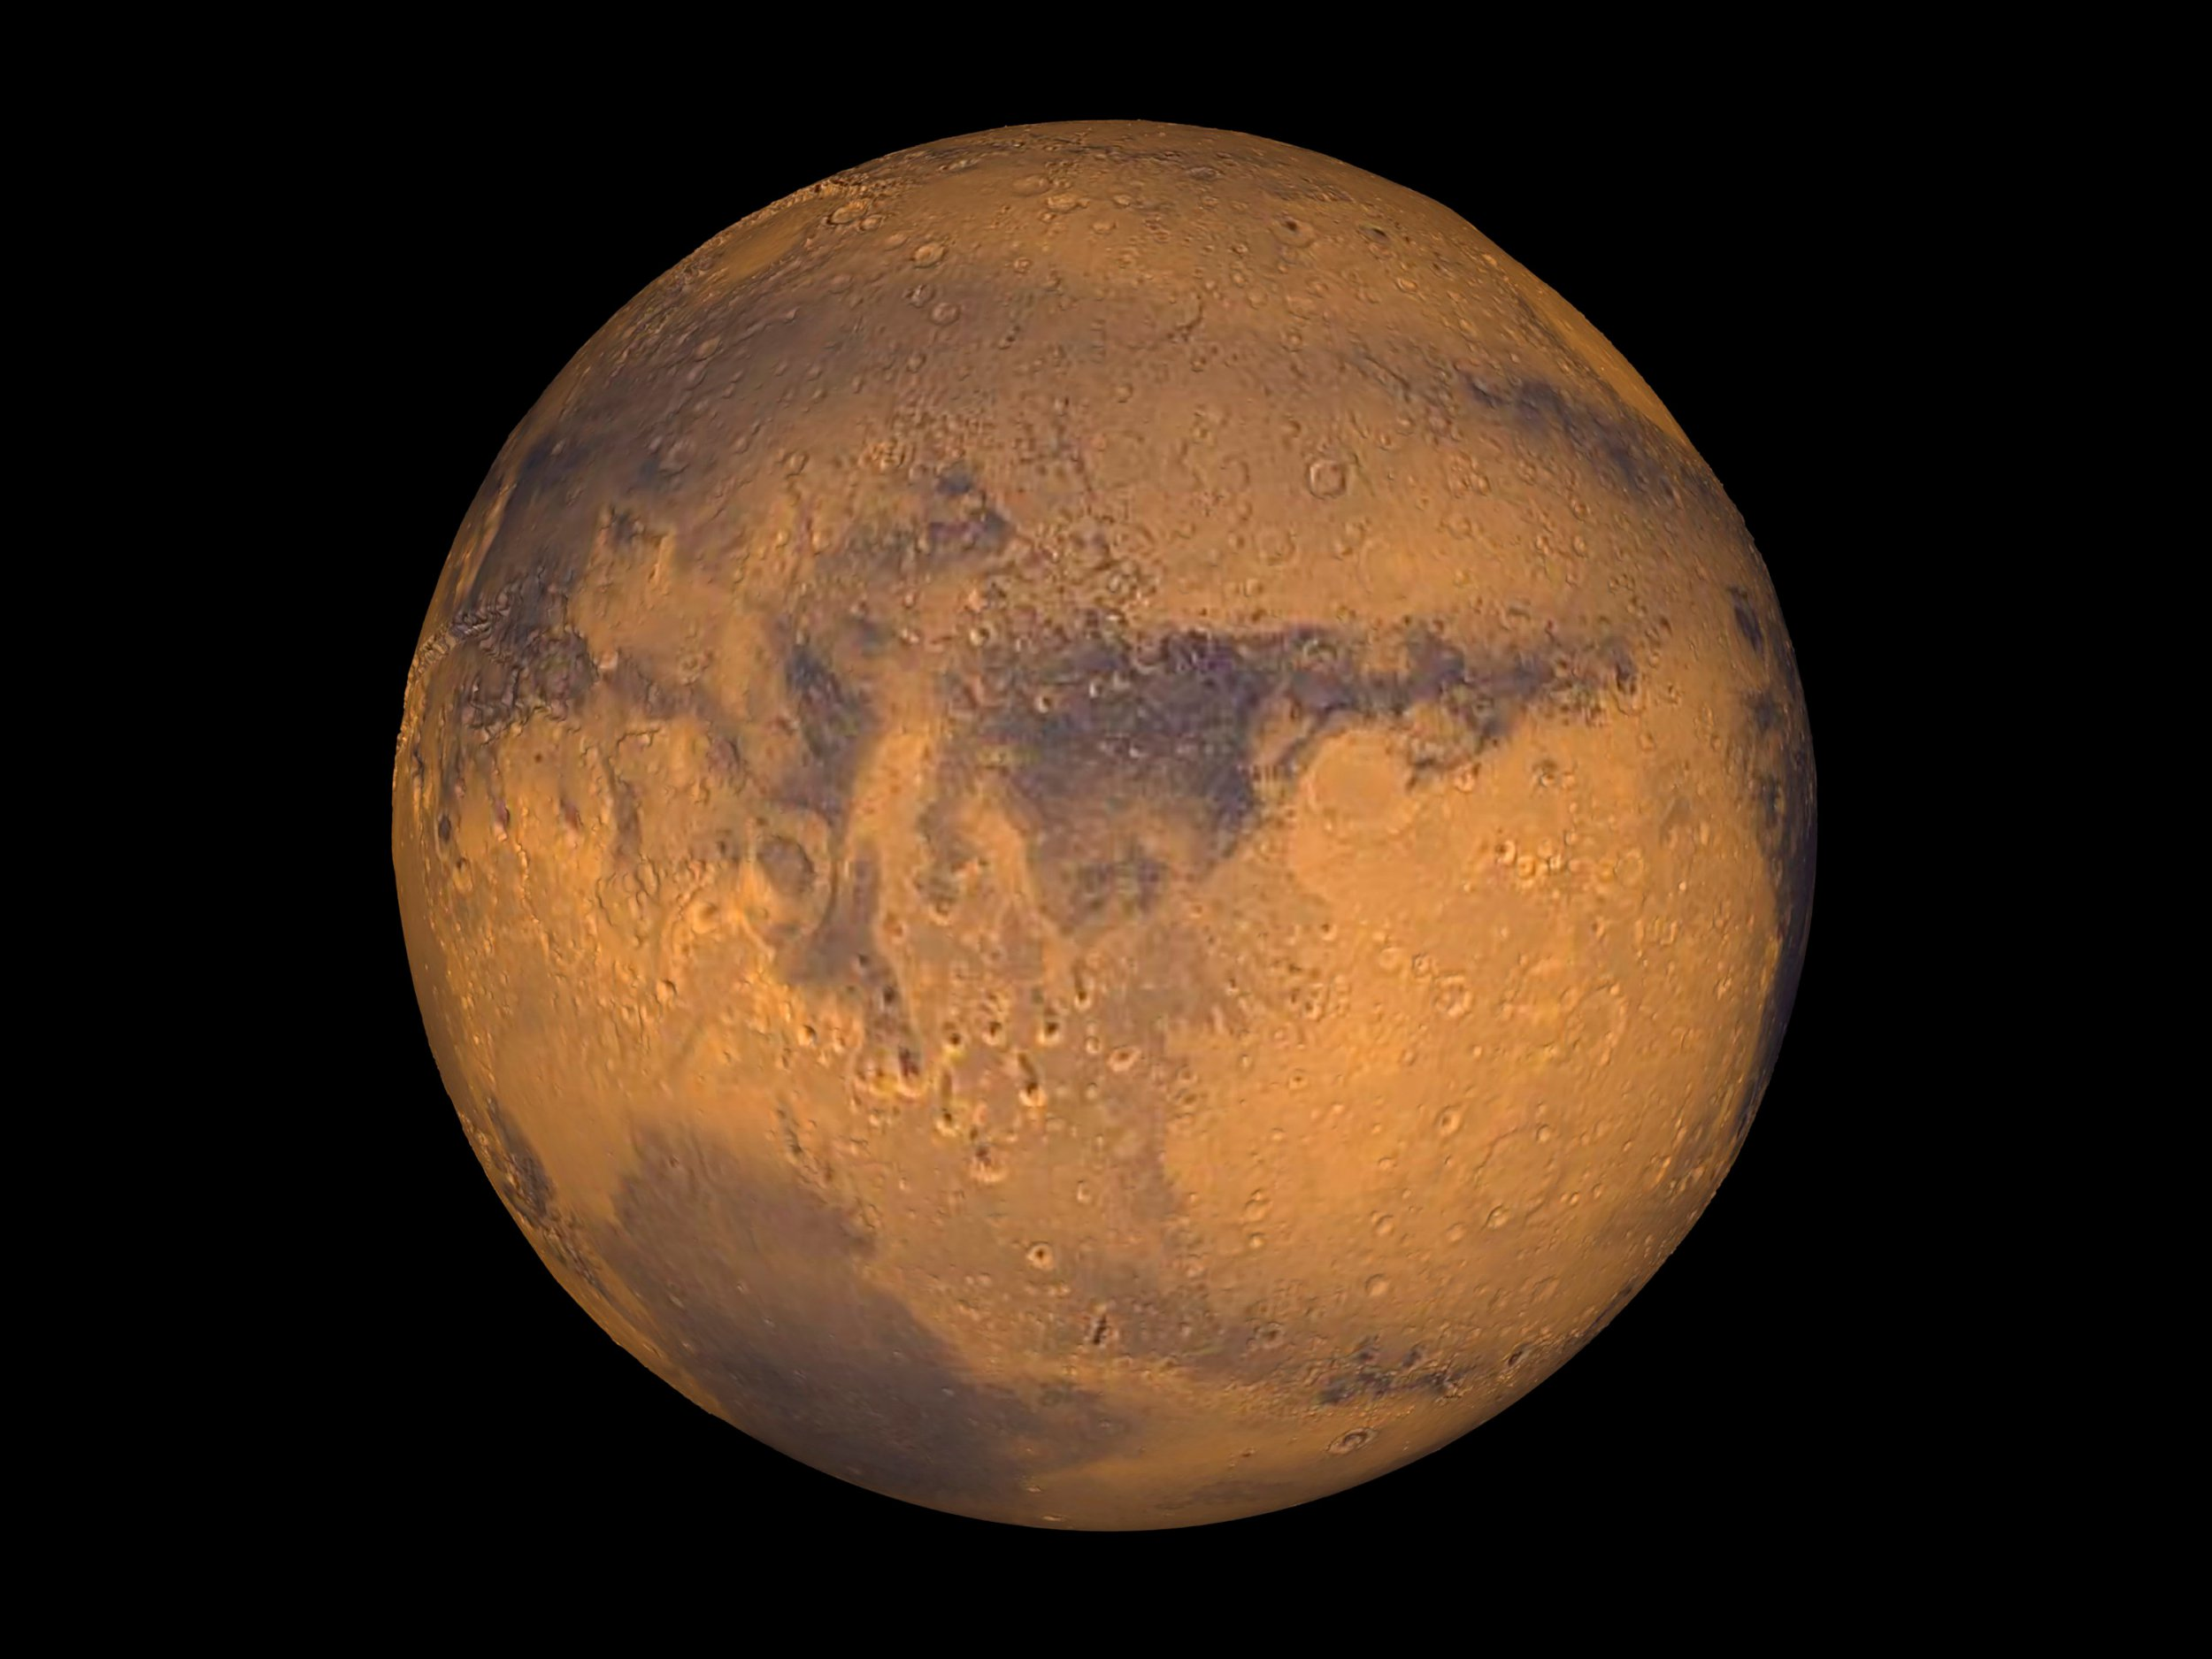 FILE PHOTO: The planet Mars showing showing Terra Meridiani is seen in an undated NASA image. NASA will announce a major science finding from the agency?s ongoing exploration of Mars during a news briefing September 28 in Washington REUTERS/NASA/Greg Shirah/Handout THIS IMAGE HAS BEEN SUPPLIED BY A THIRD PARTY. IT IS DISTRIBUTED, EXACTLY AS RECEIVED BY REUTERS, AS A SERVICE TO CLIENTS. FOR EDITORIAL USE ONLY. NOT FOR SALE FOR MARKETING OR ADVERTISING CAMPAIGNS